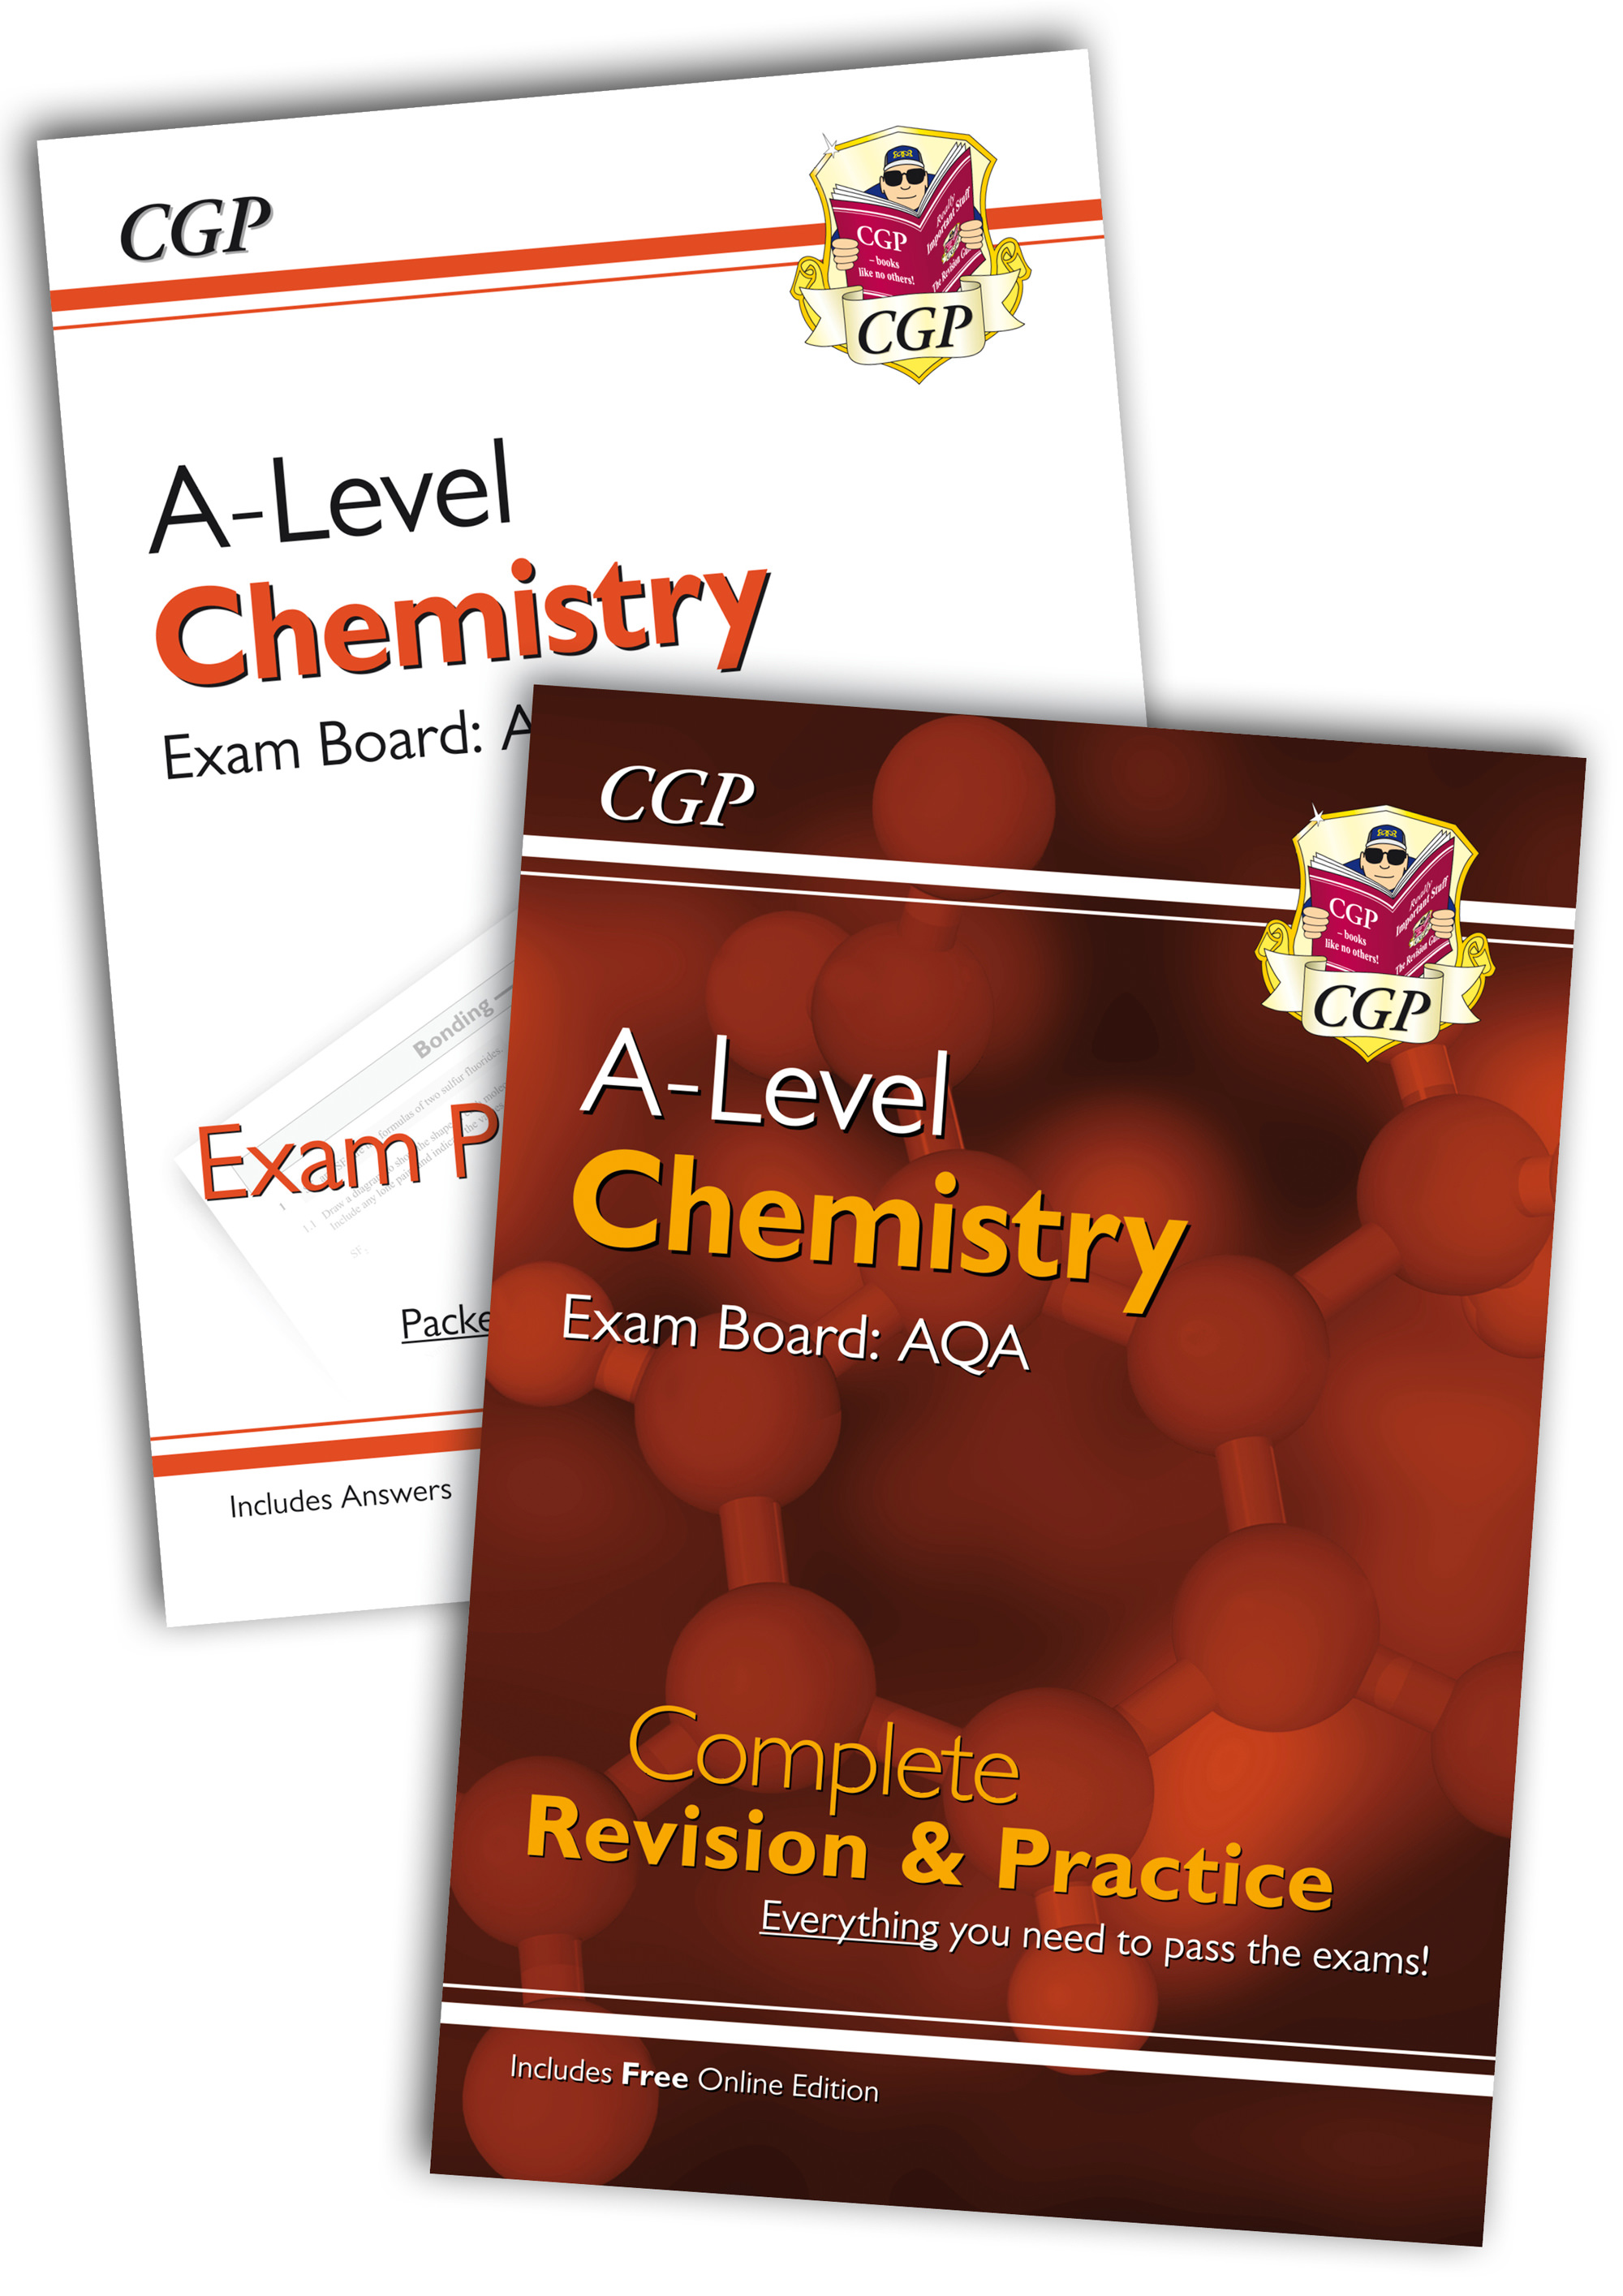 CARQB71 - New 2018 Complete Revision and Exam Practice A-Level Chemistry Bundle: AQA Year 1 & 2